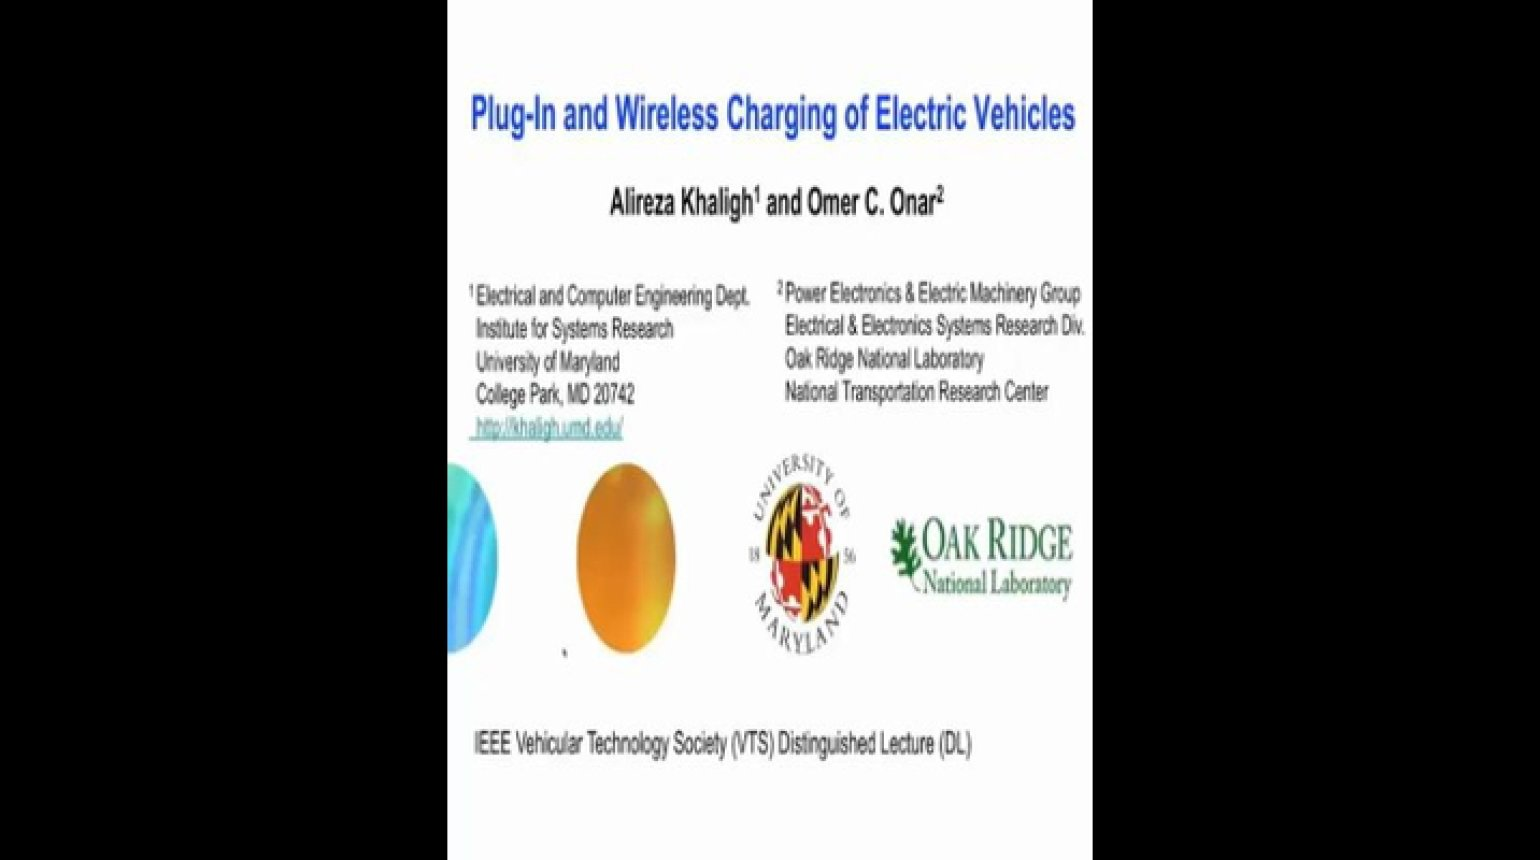 Video - Plug-In and Wireless Charging of Electric Vehicles